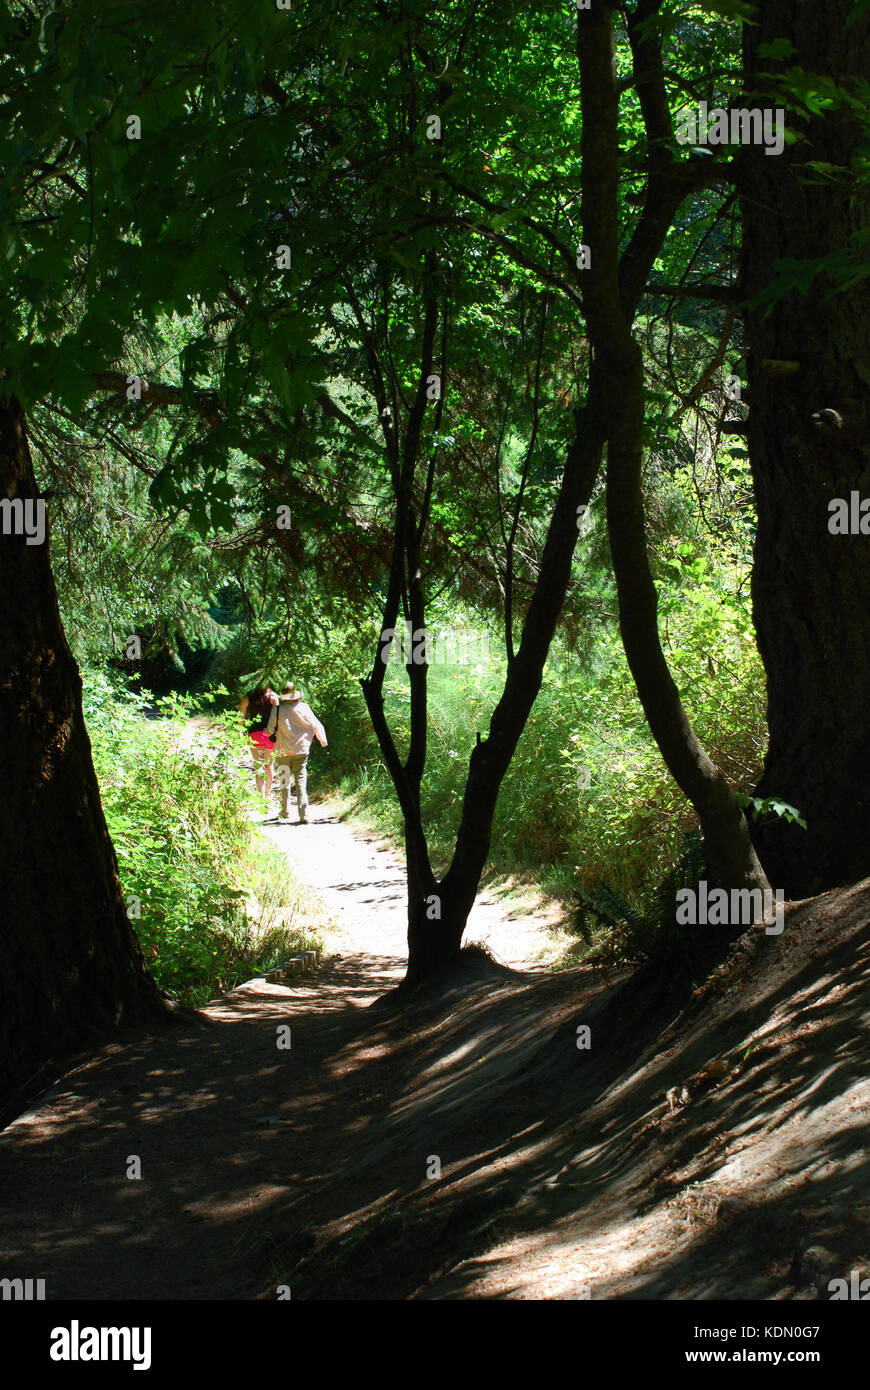 Trees cast shadows over the trail at Witty's Lagoon near Victoria, BC, Canada - Stock Image